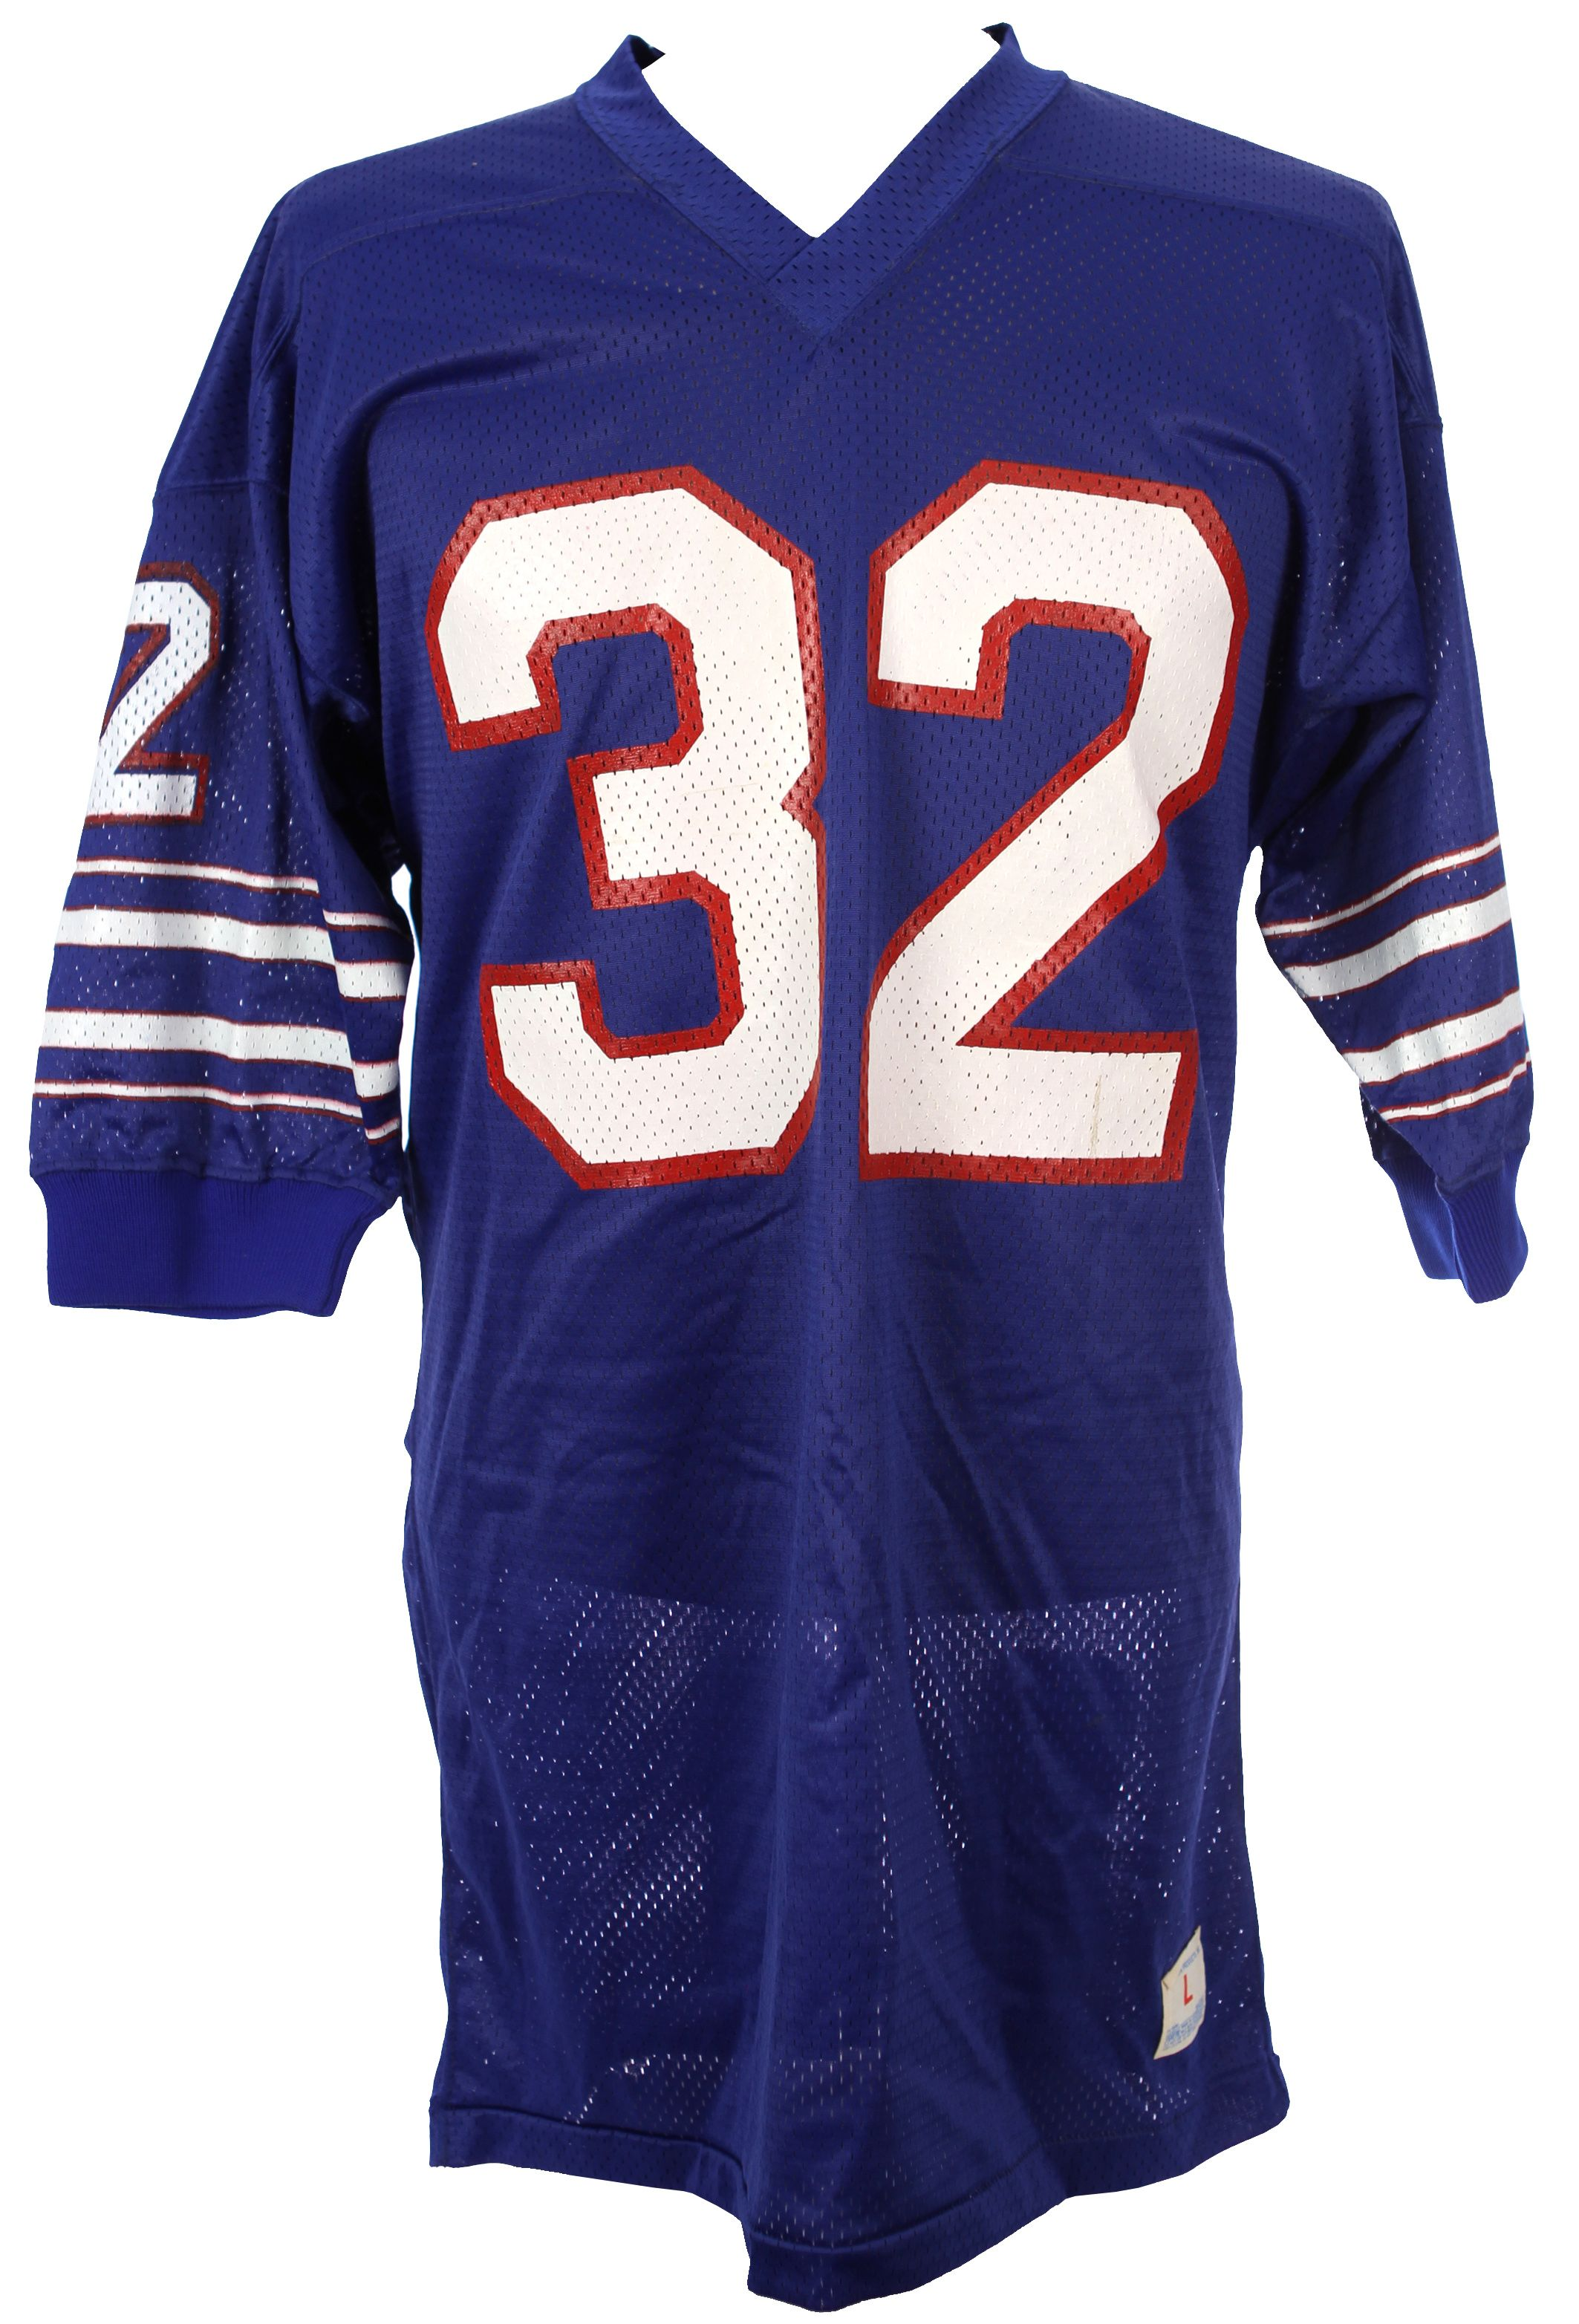 reputable site 22aed 4f4e1 Lot Detail - 1970's (late) O.J. Simpson Buffalo Bills Jersey